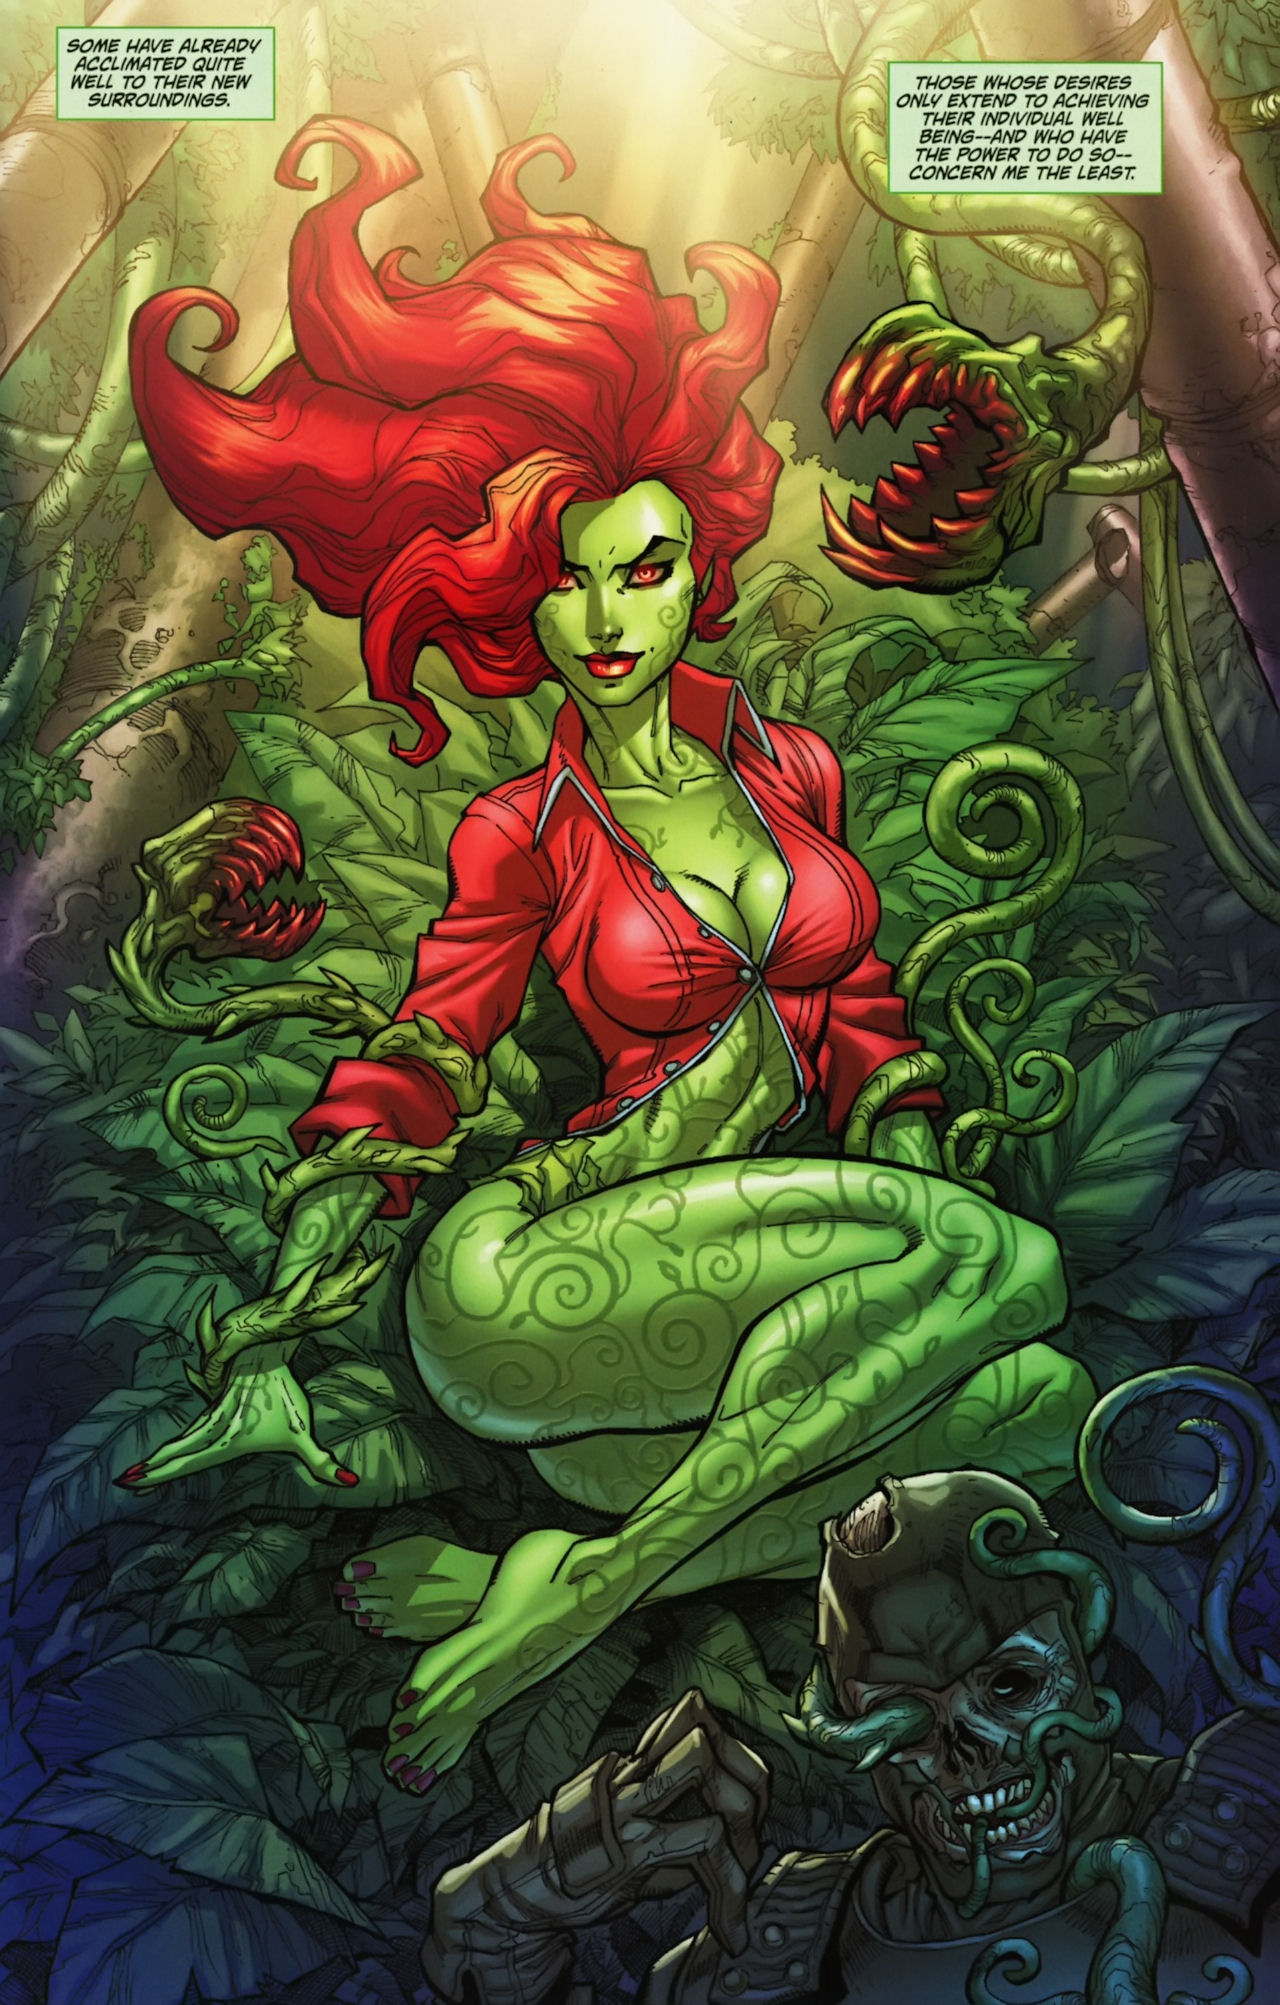 Batman poison ivy kiss of death